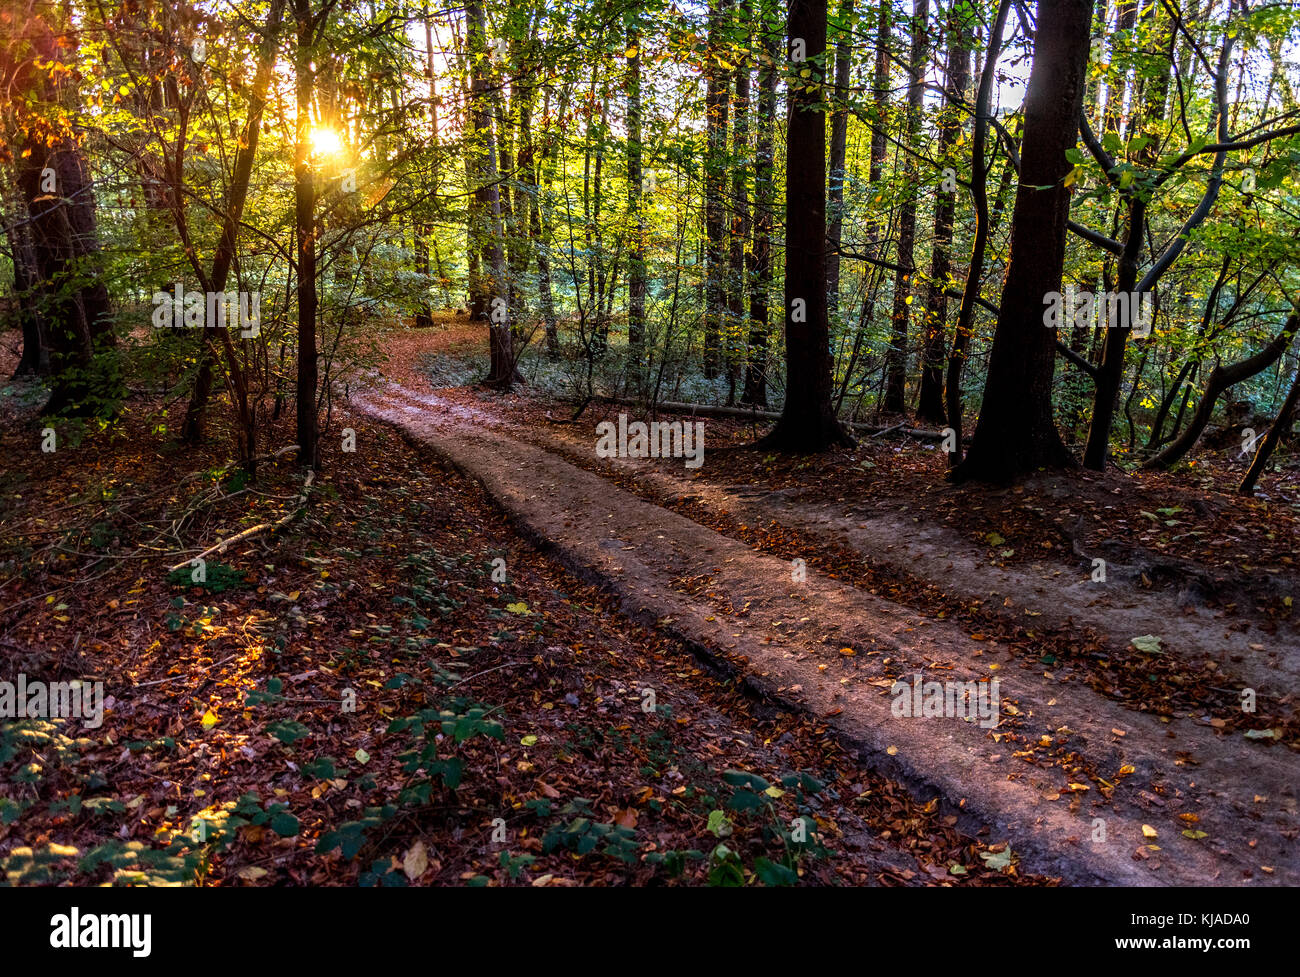 Forest path in afternoon sun, autumn, Germany Stock Photo